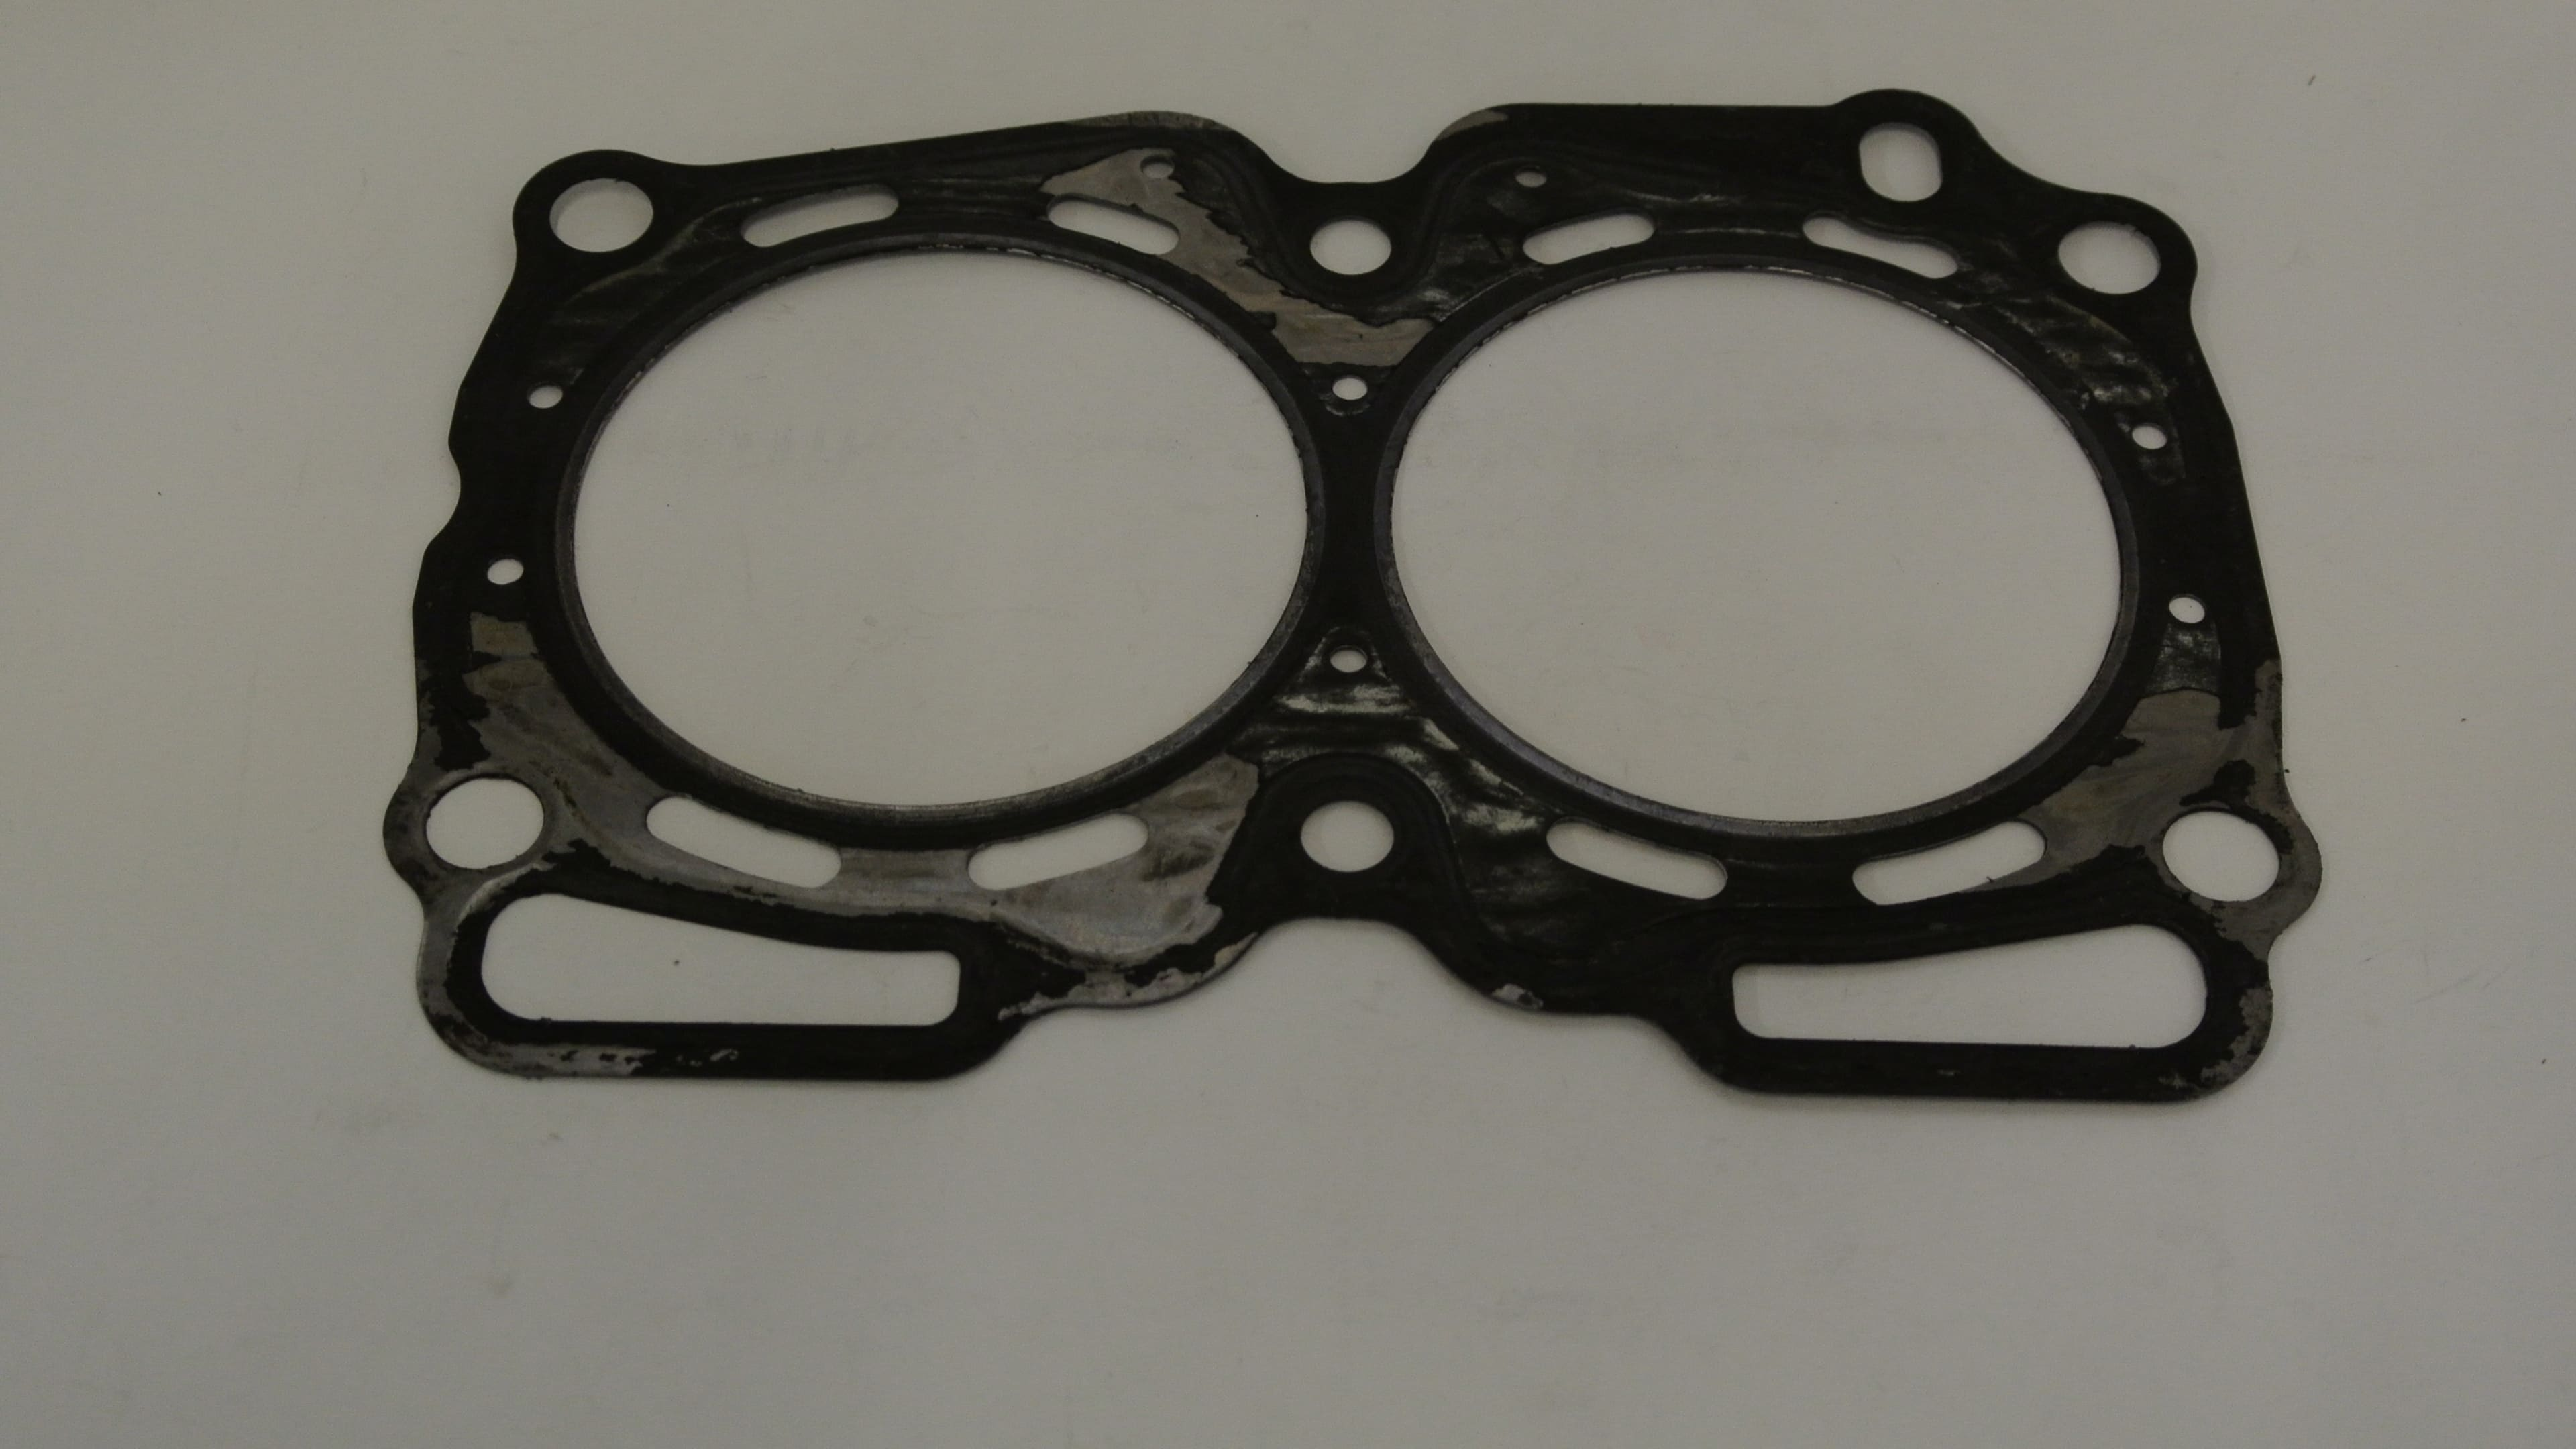 2 New Back Plate with Gasket for Fora 2,5 сc F D CL Combat Engine